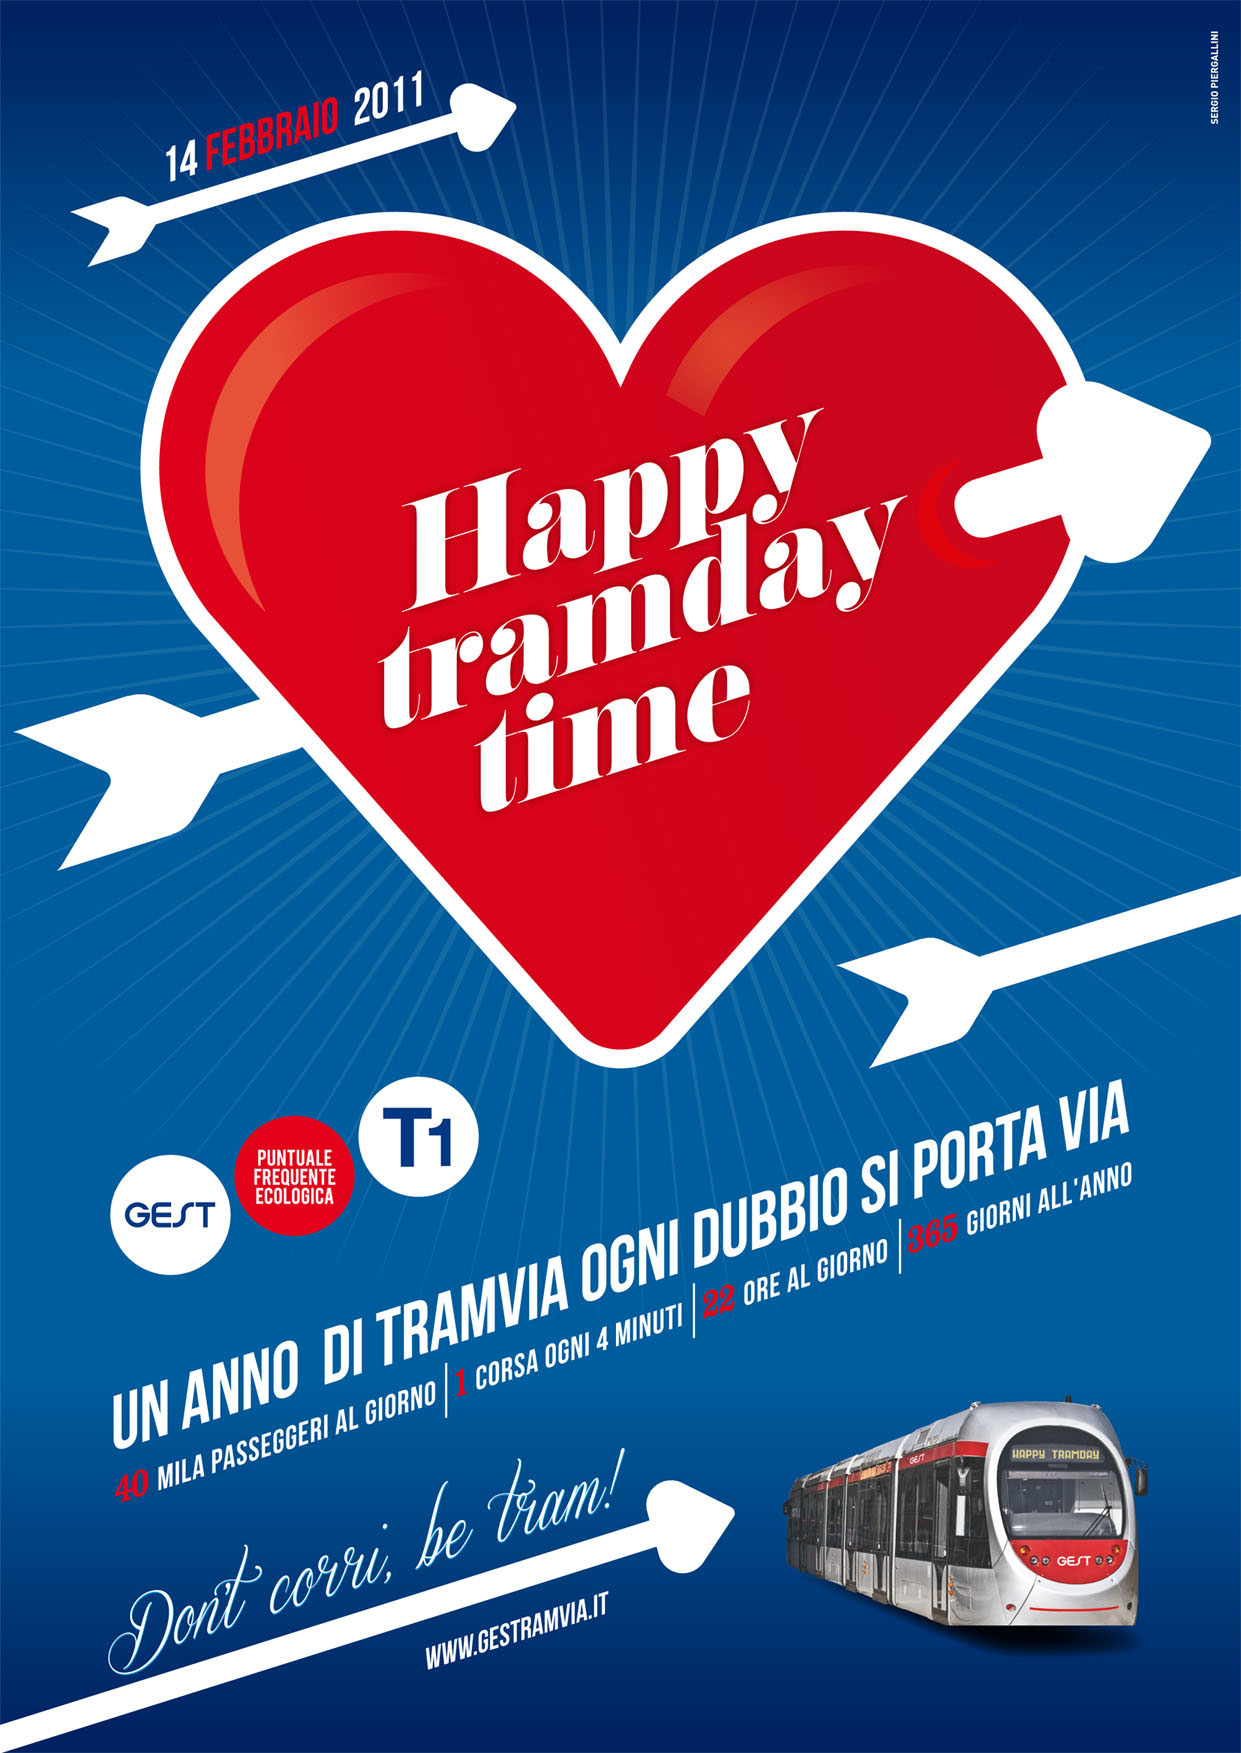 One year of Florence tramway